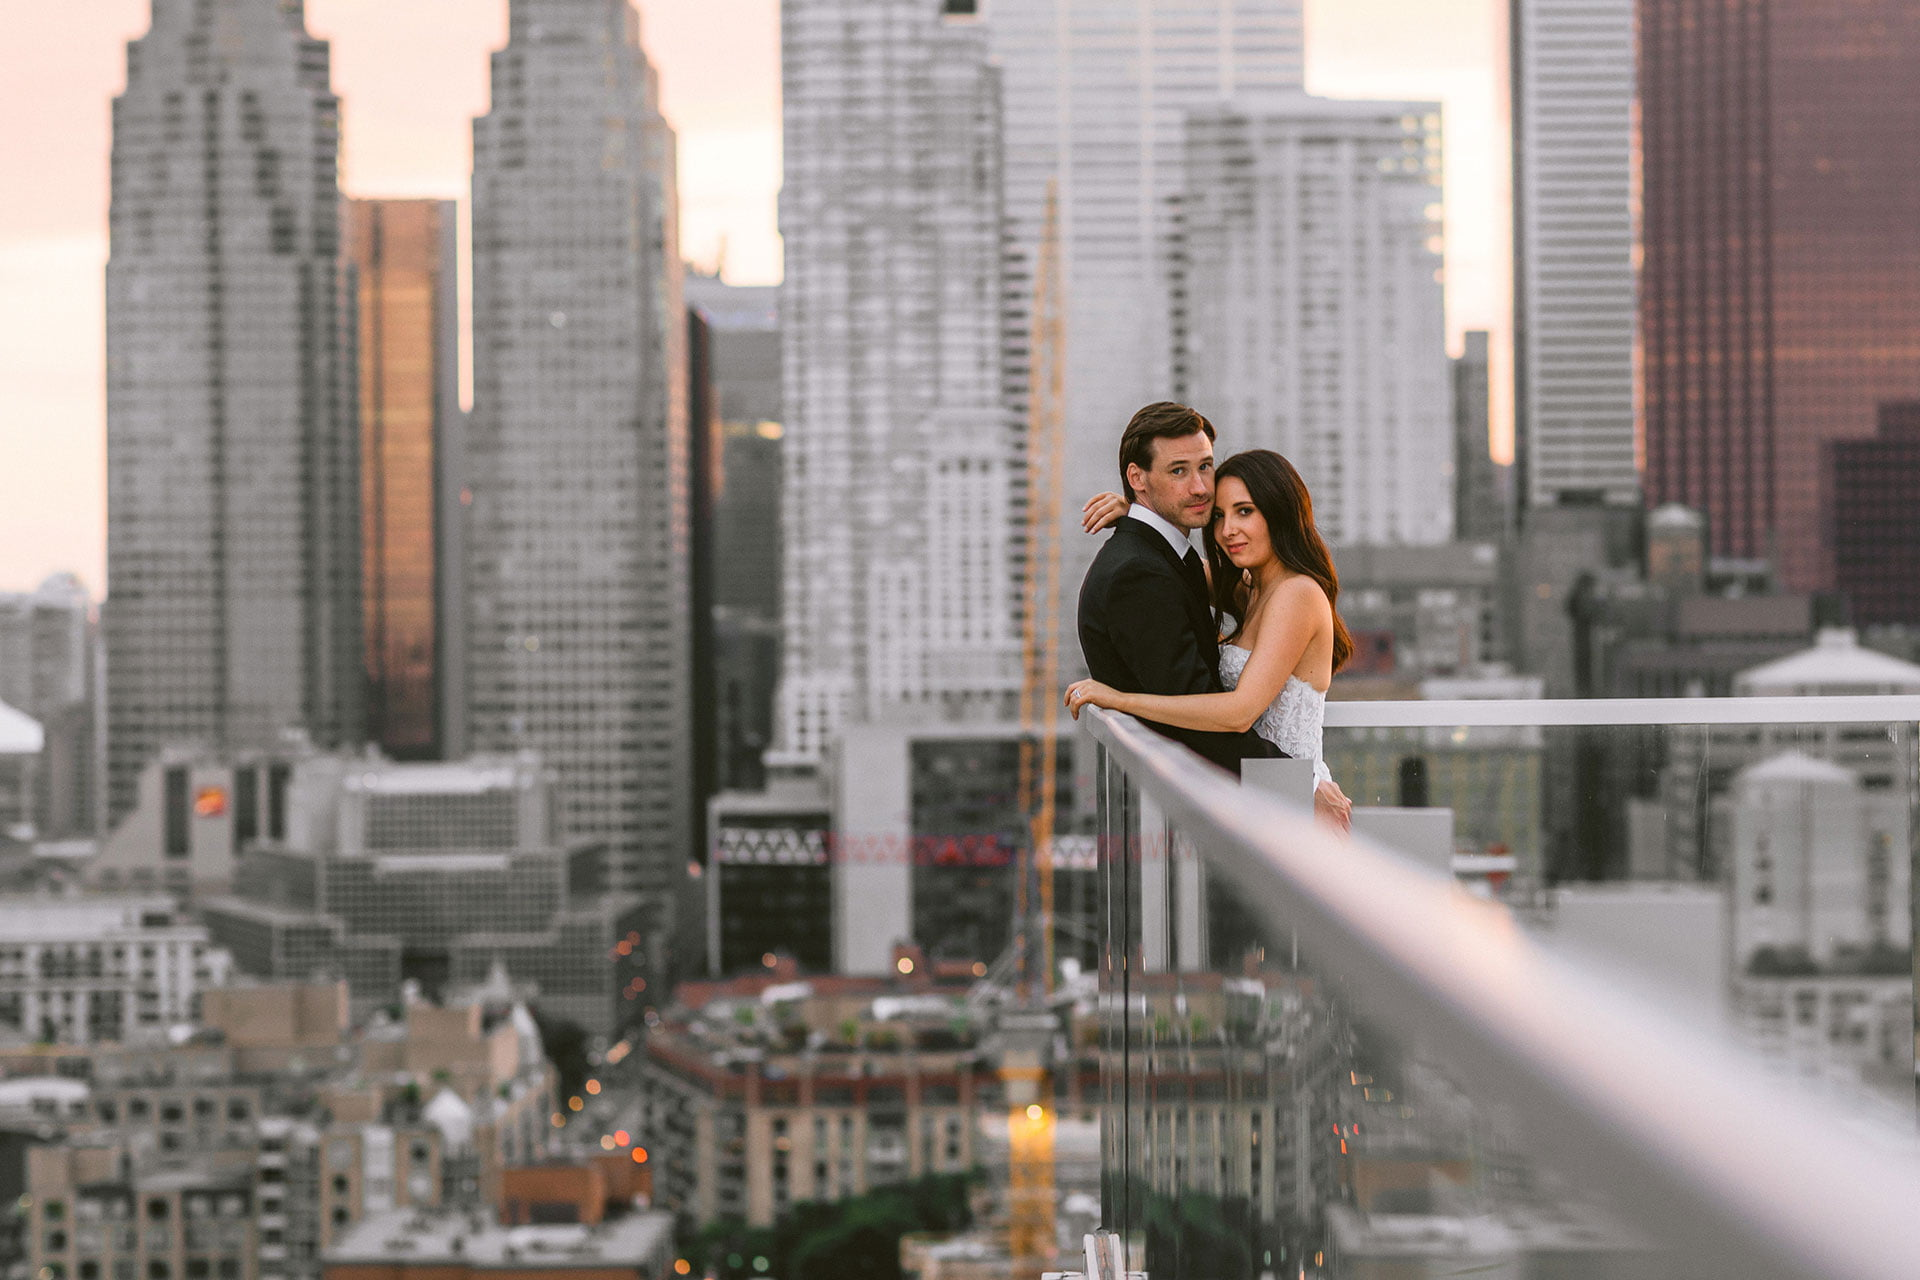 Globe and Mail Centre is one of the most Epic outdoor wedding venues in Toronto, Ontario